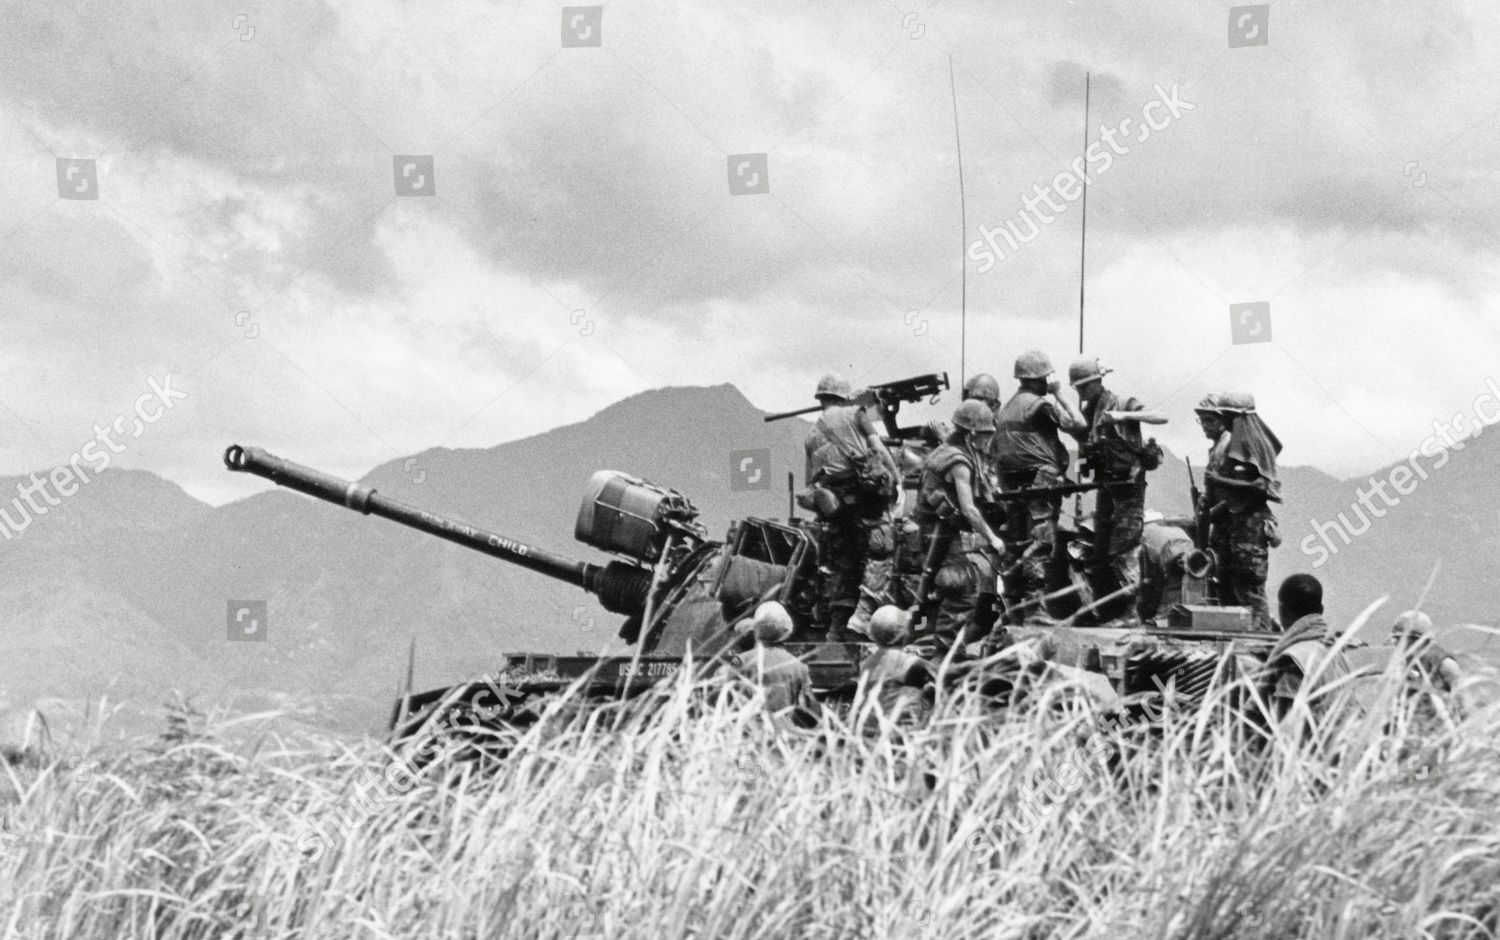 Heavily loaded infantrymen US 101st Airborne Division